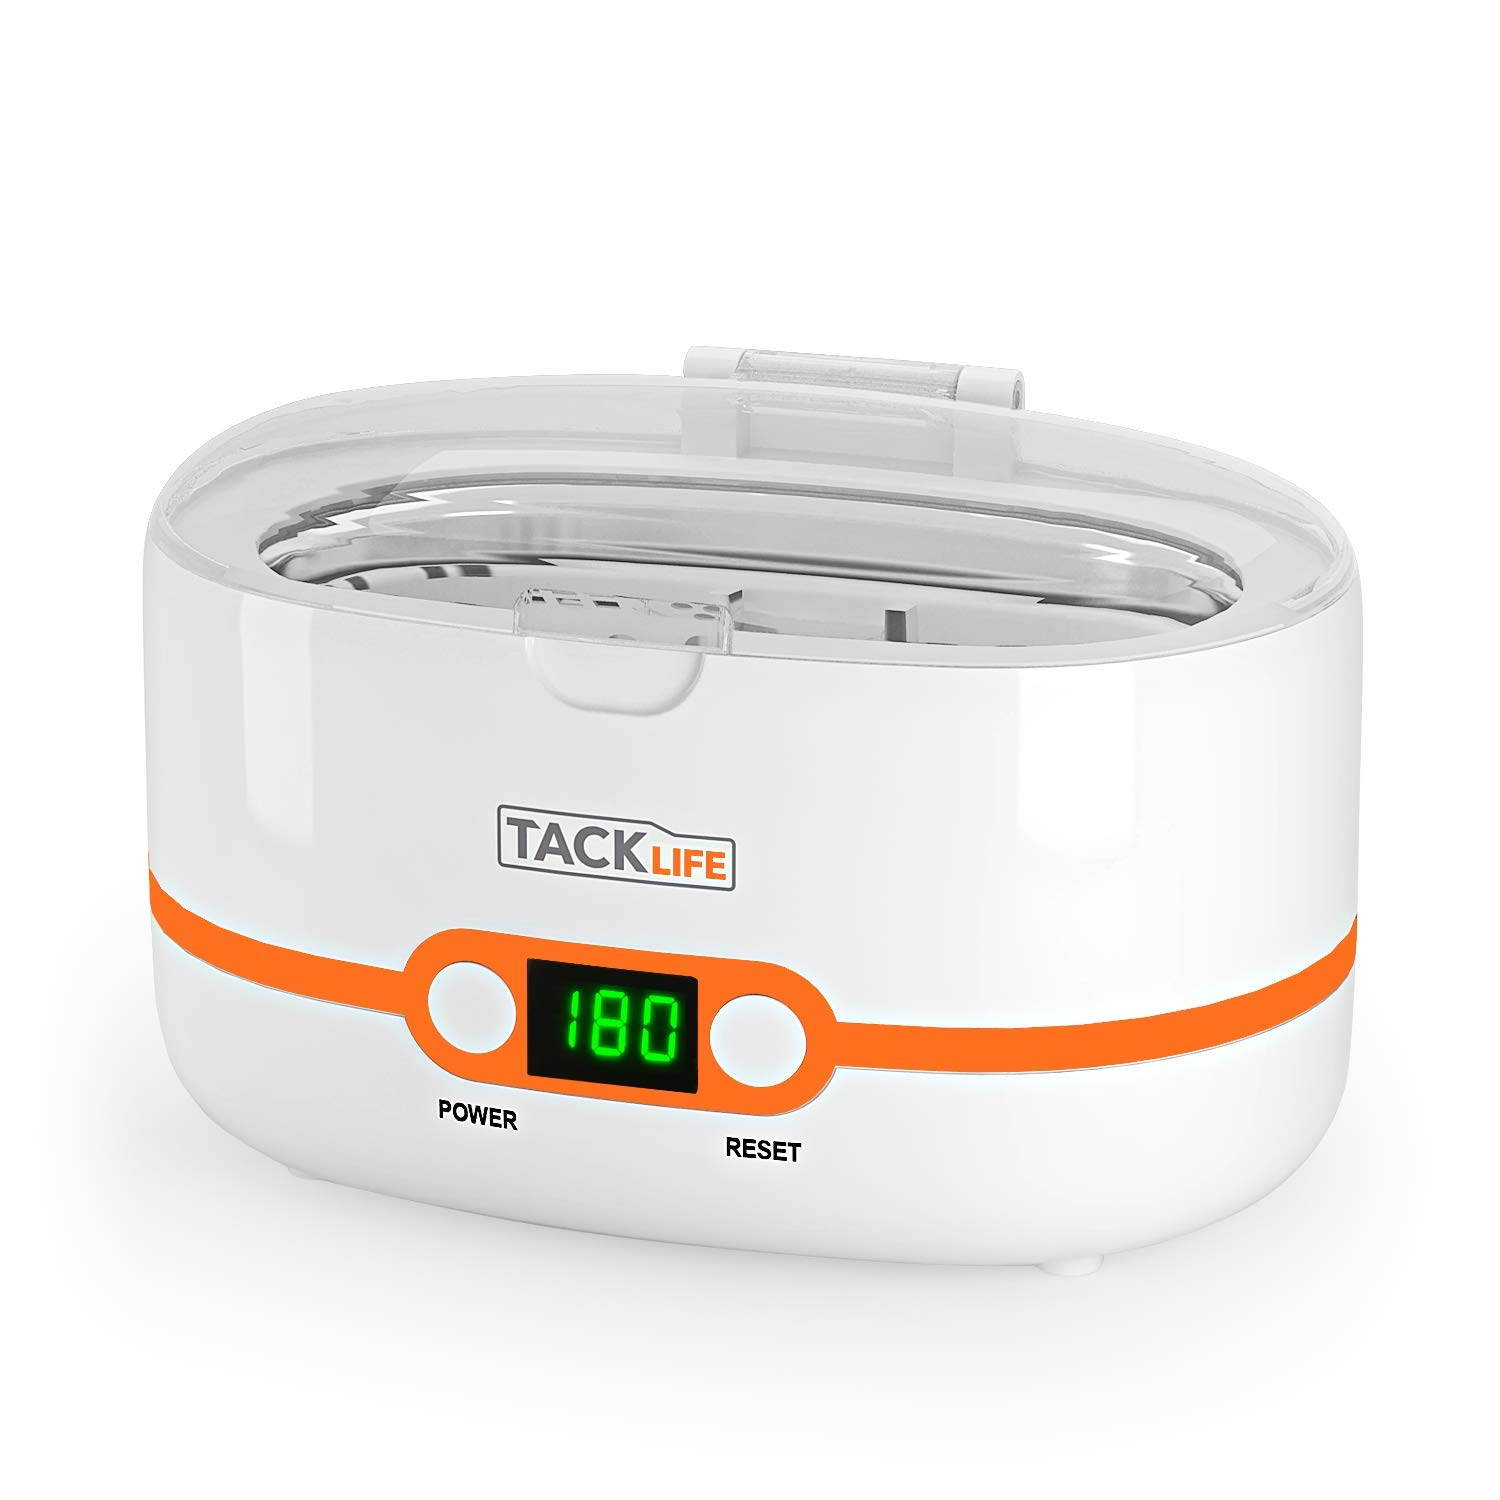 Ultrasonic Jewelry Cleaner, Tacklife MUC02 Professional Ultrasonic Cleaner with 5 Time Setting, 600ml Tank Capacity Jewelry Cleaner for Cleaning Eyeglasses, Watches, Rings, Dentures, Fruits, Parts